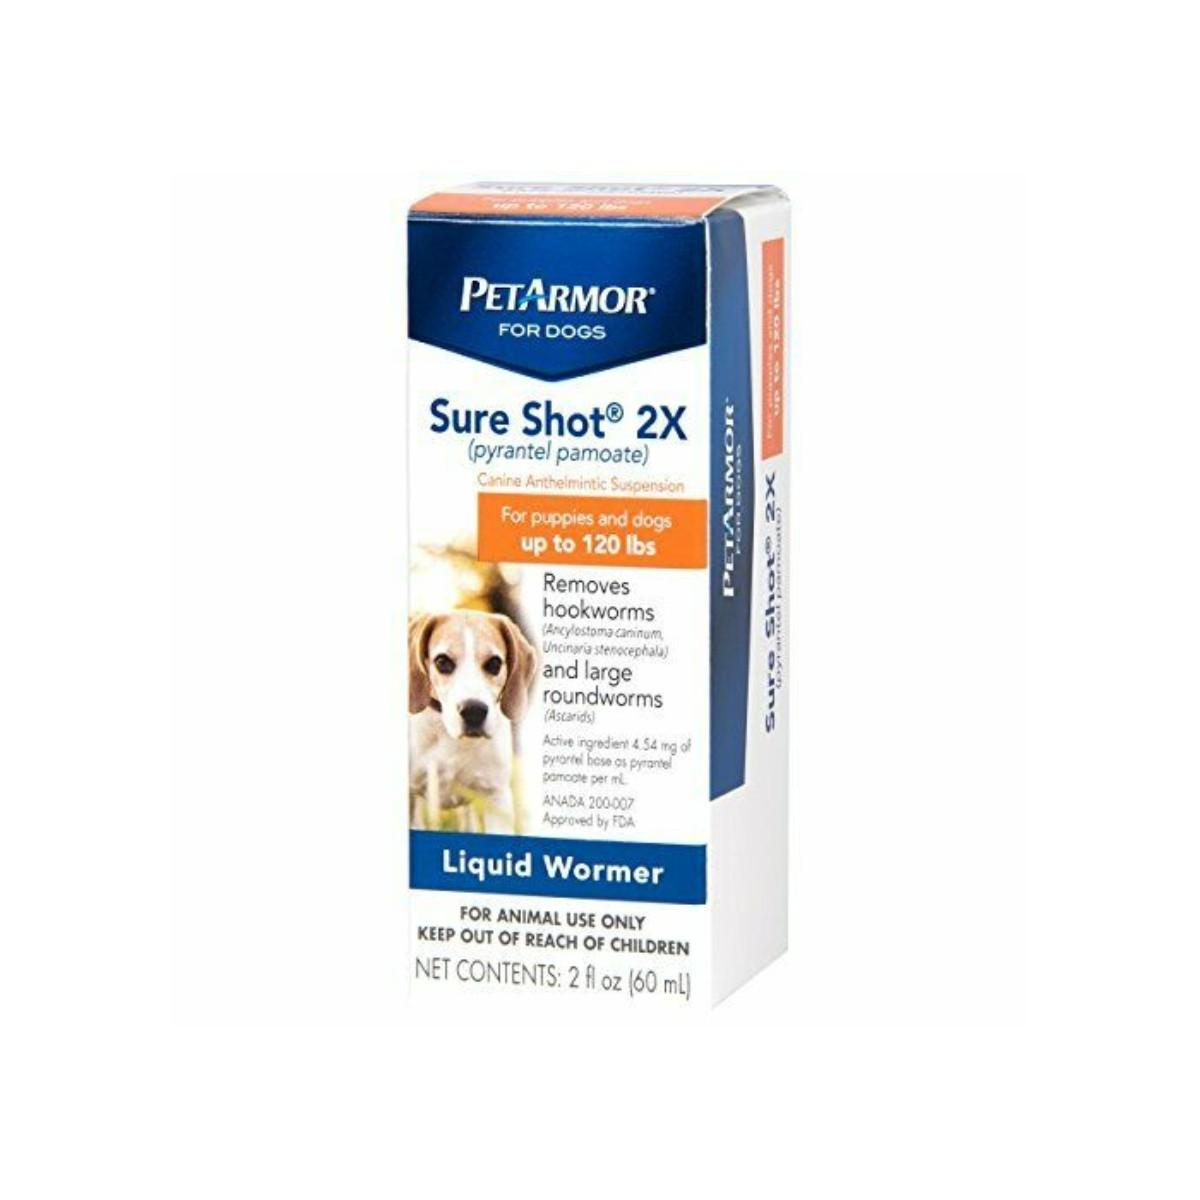 PetArmor Sure Shot 2X (pyrantel pamoate) De-wormer for Dogs